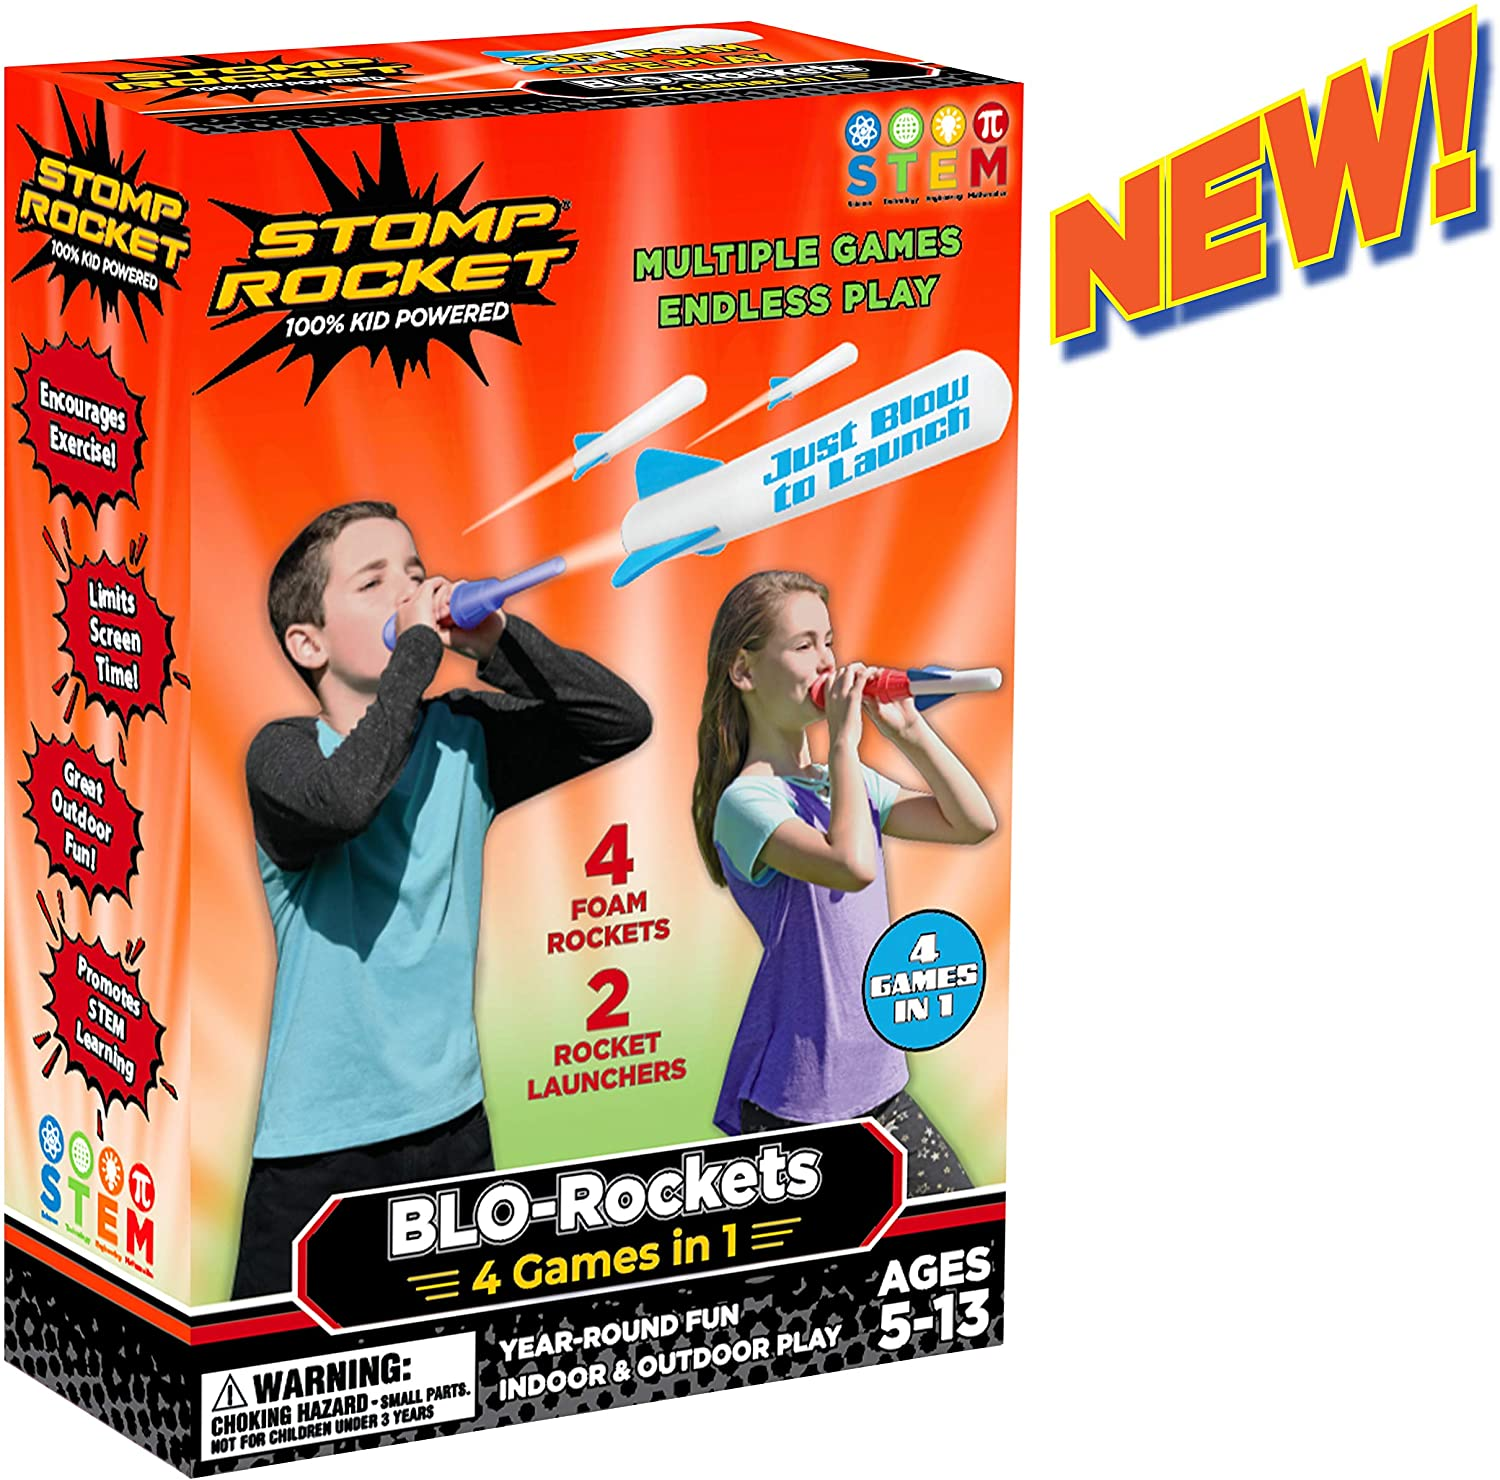 Stomp Rocket New BLO-Rockets - Includes 2 Launchers, 4 Rockets - Indoor and Outdoor Rocket Toy Gift for Boys and Girls Ages 5 (6, 7, 8) and Up